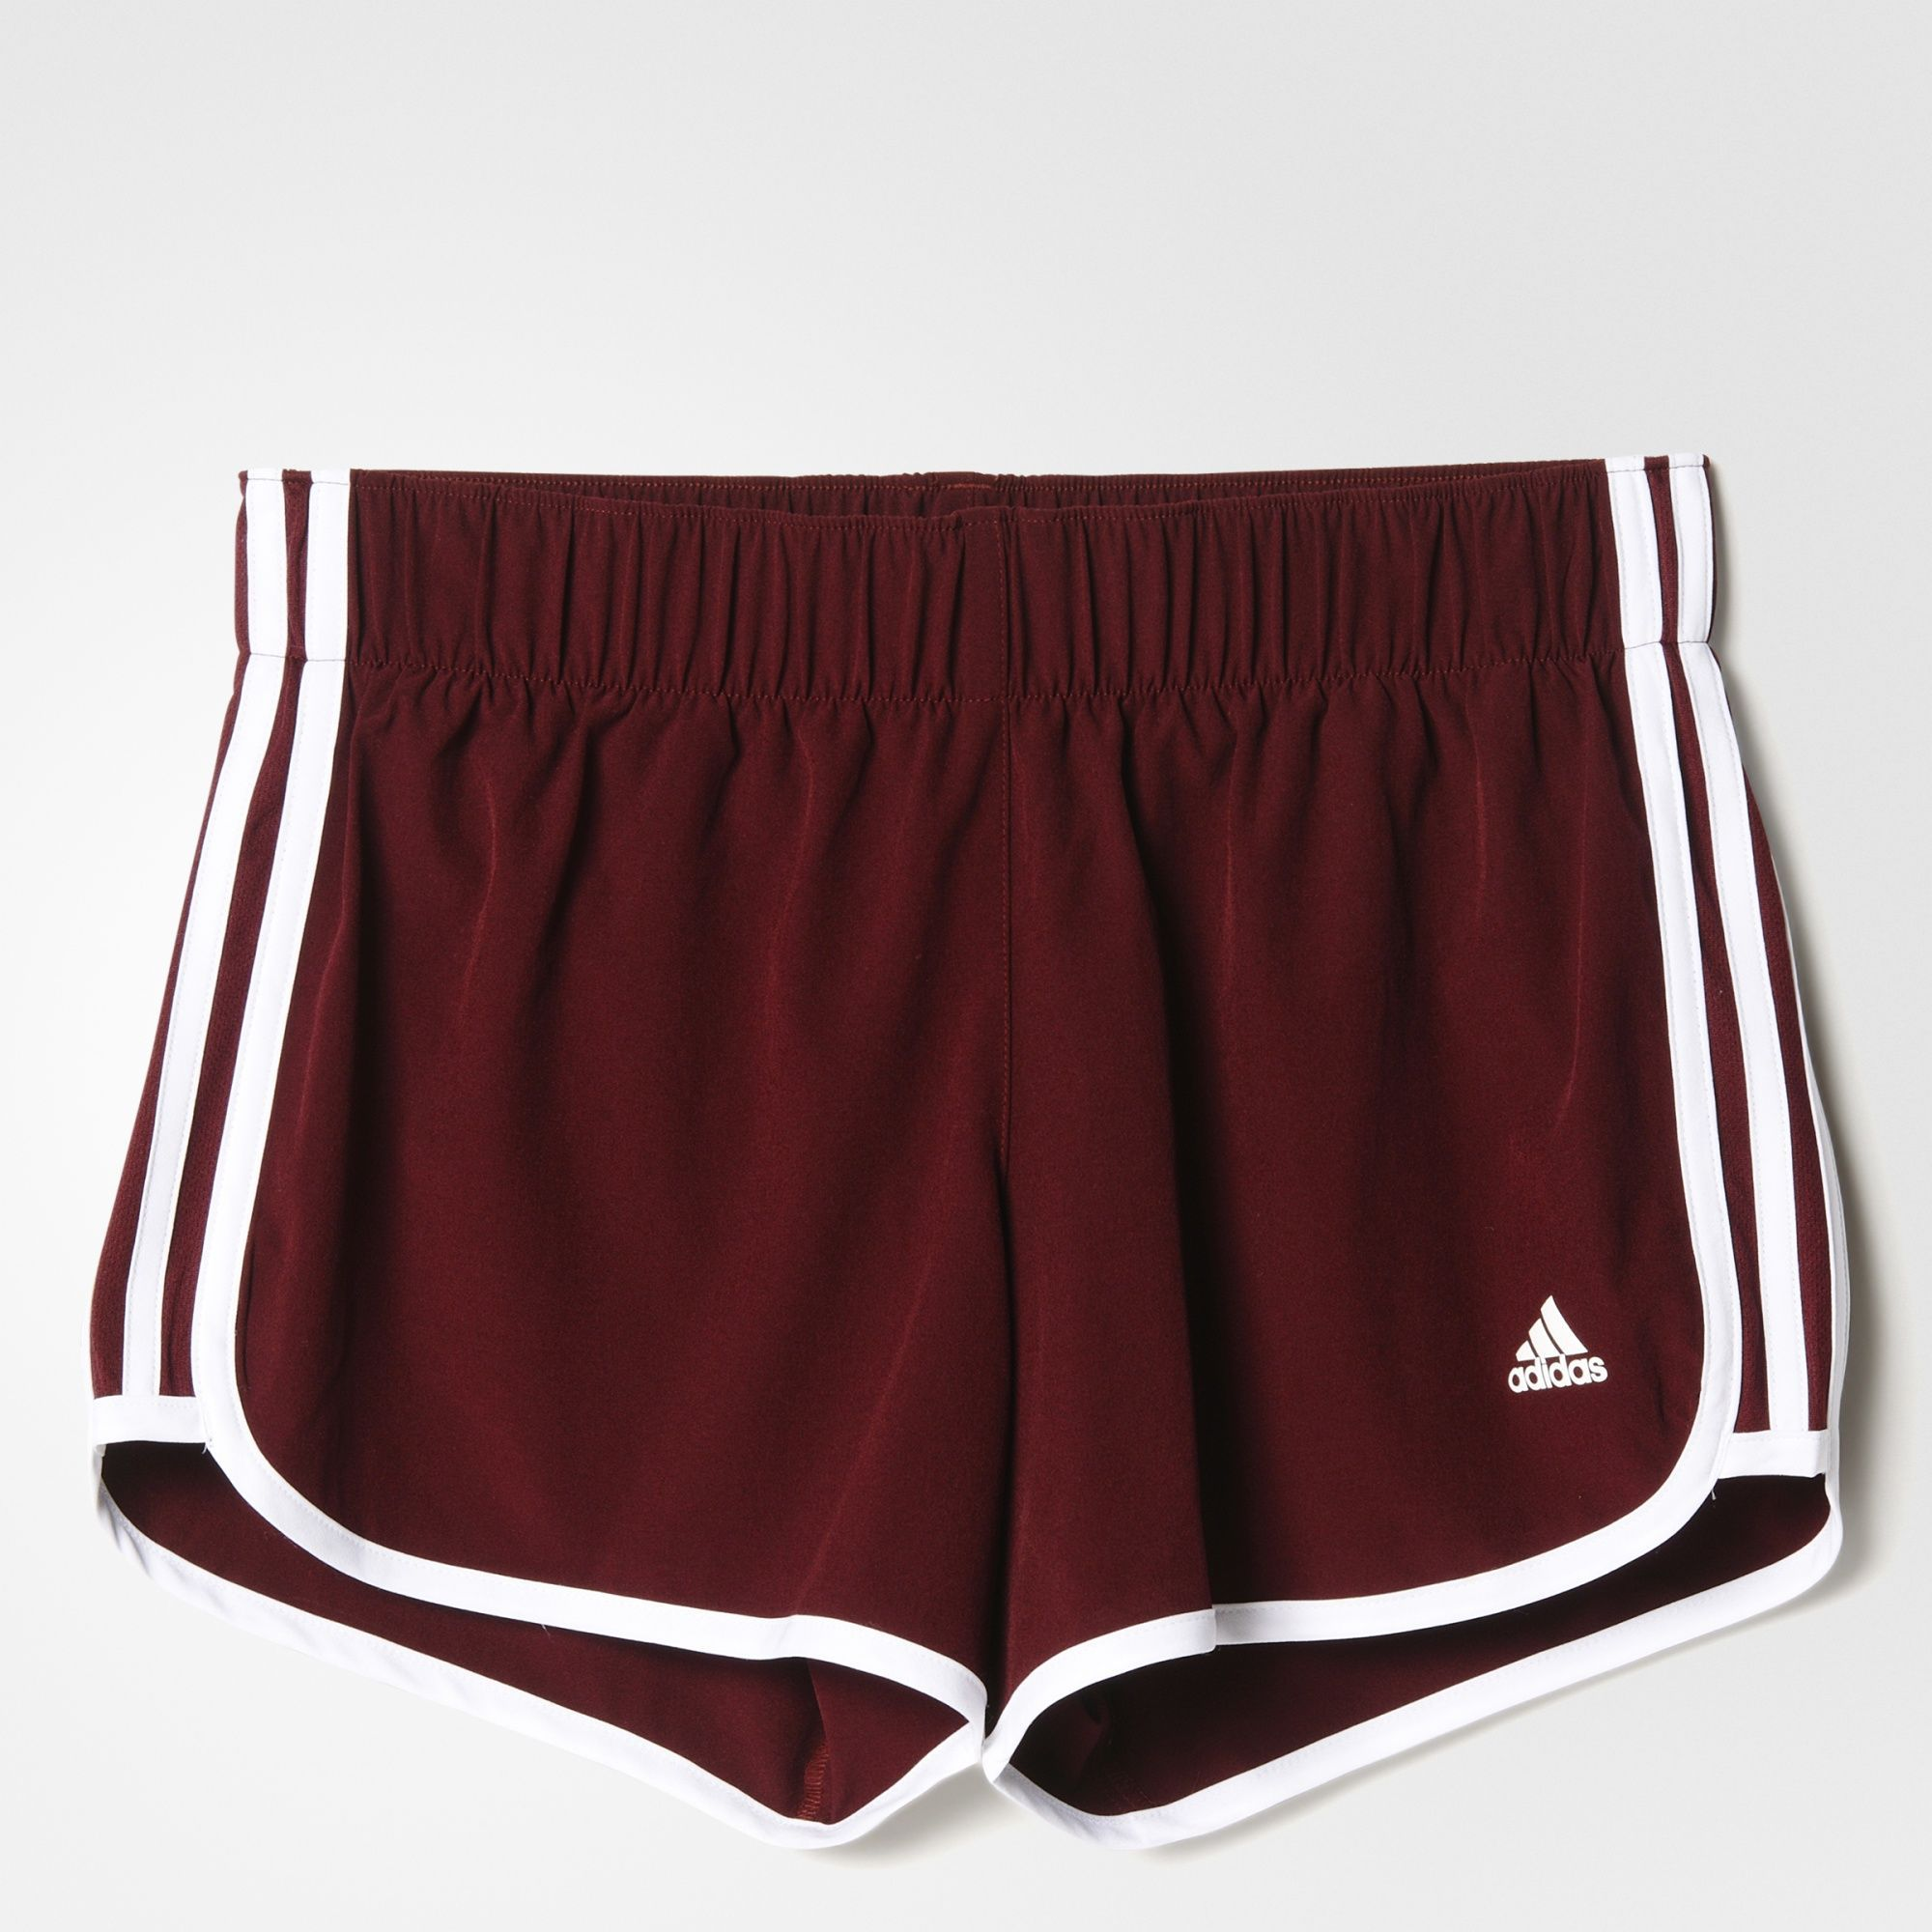 e41d595b515 M10 3-Stripes Shorts in 2019 | Styling | Gym shorts womens, Adidas ...